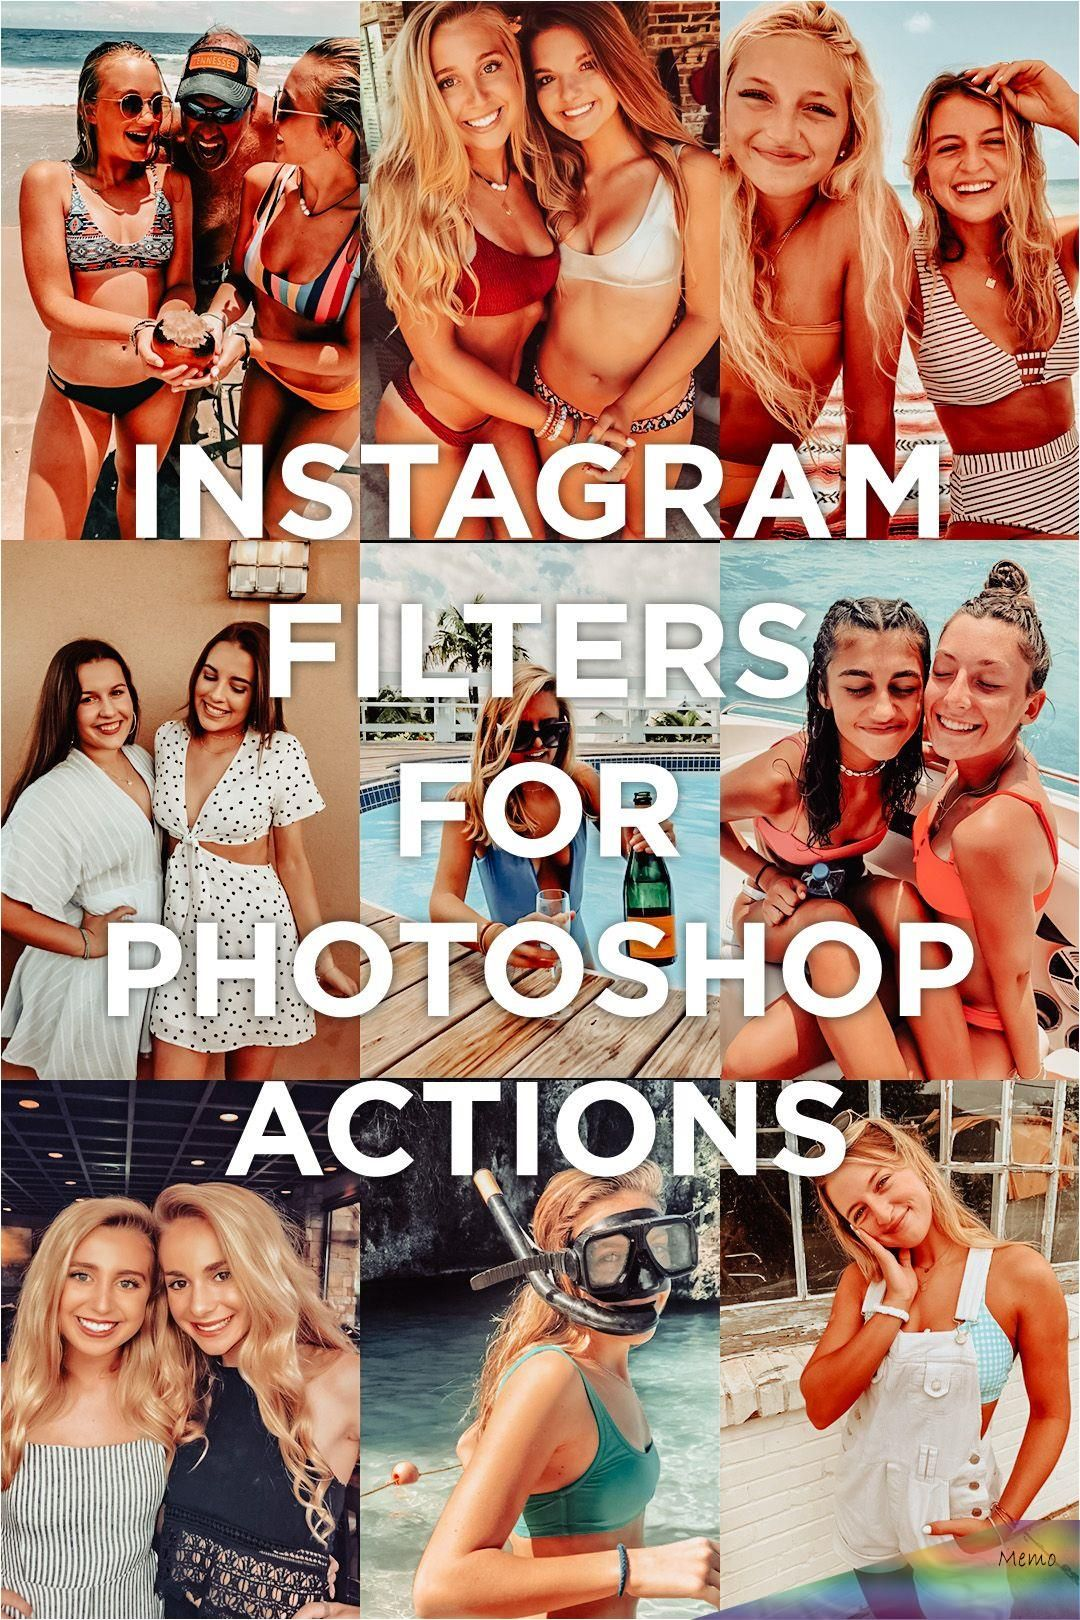 Jan 21 2020 Vintage Instagram Theme Tbest Filters For Instagram Tpopular Hashtags In 2020 Instagram Photo Editing Photoshop Actions Best Photo Editing Software